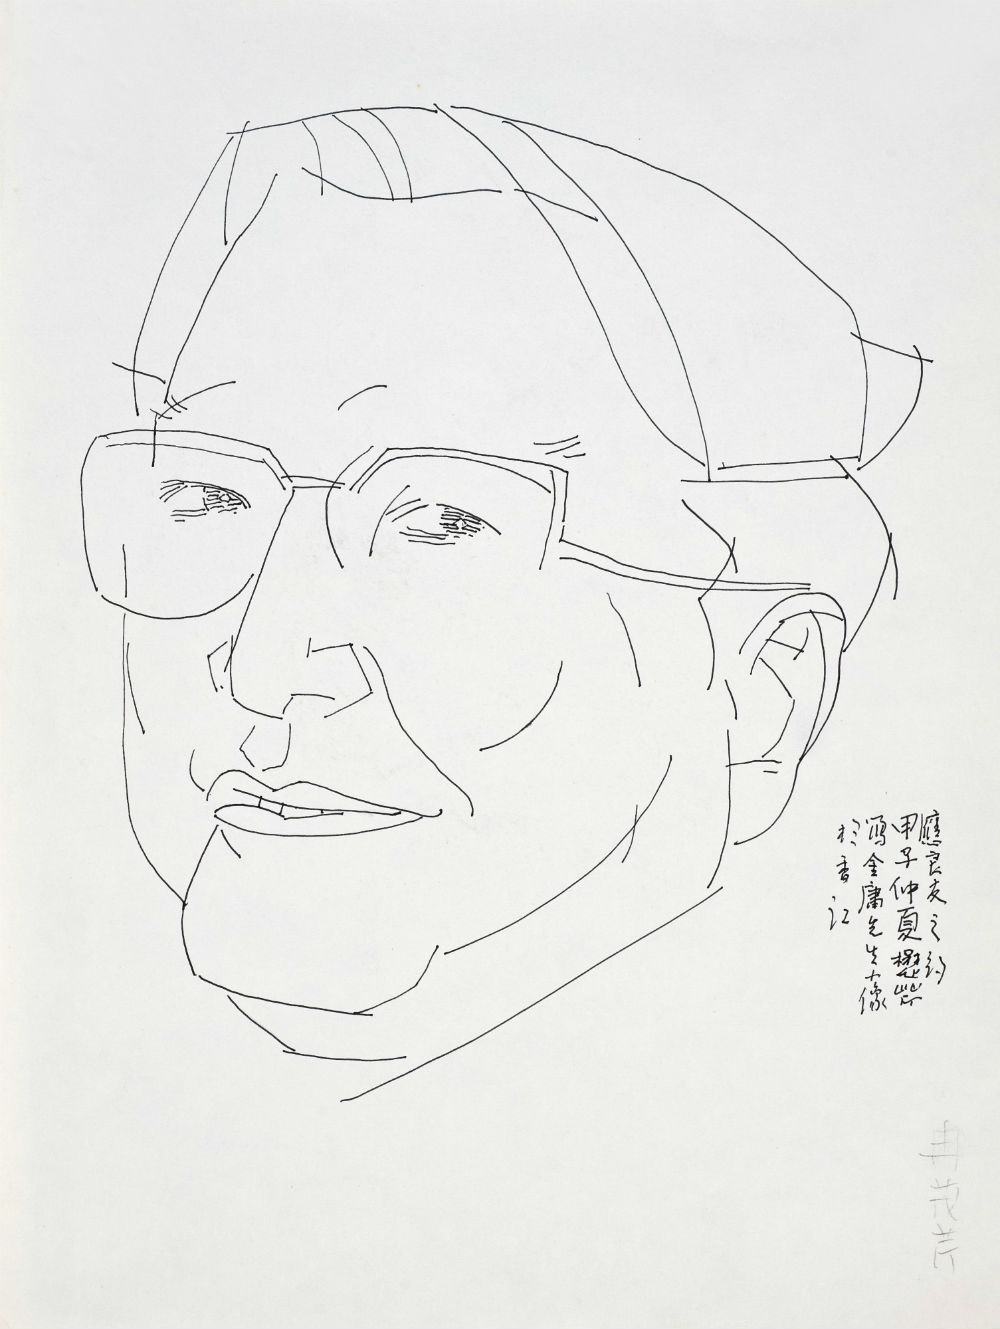 In memory of Jin Yong and my days as an illustrator